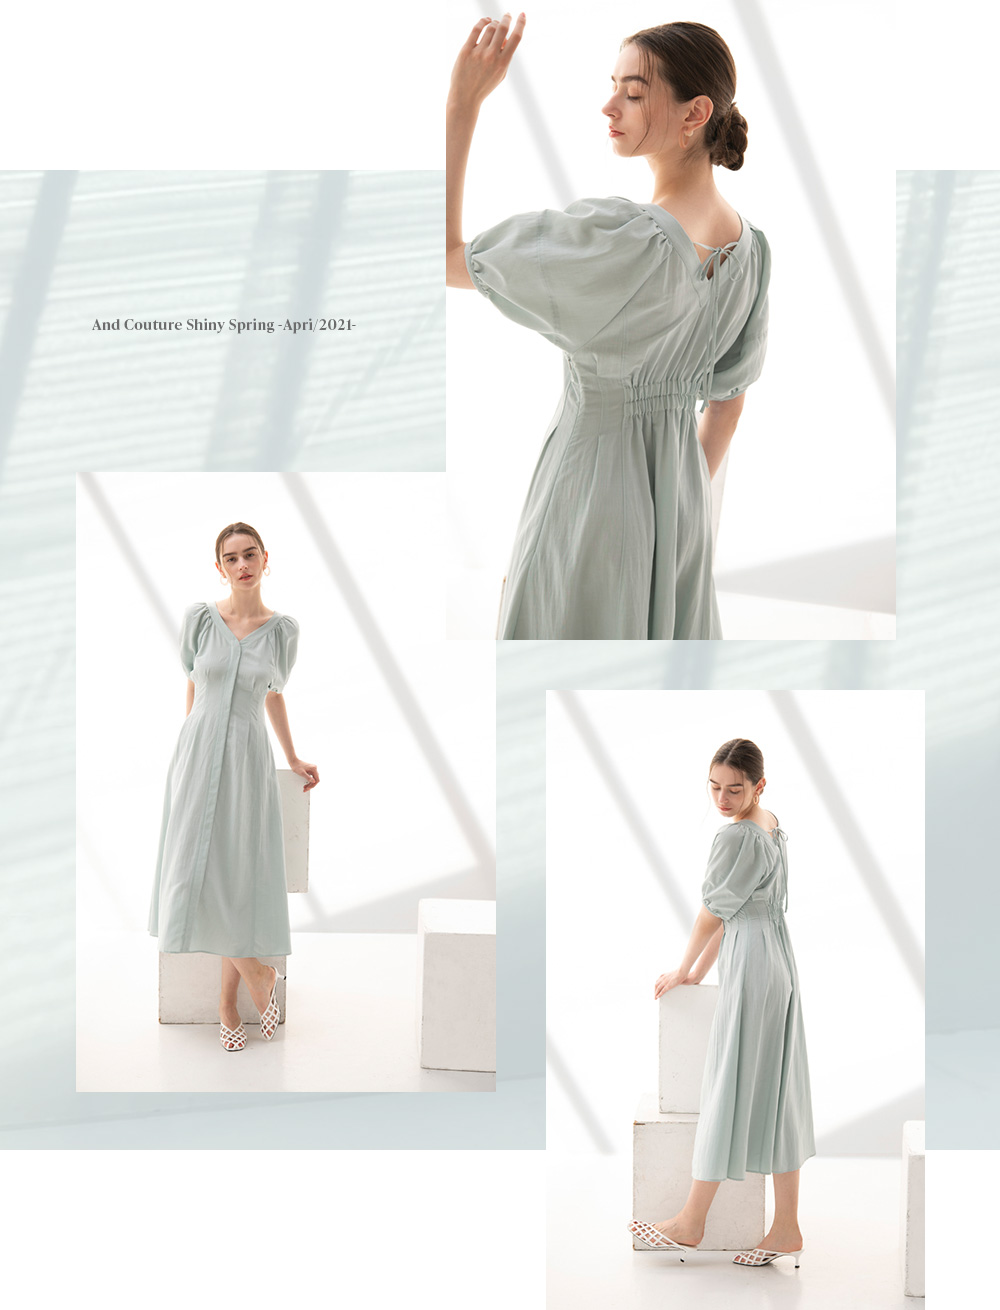 And Couture Shiny Spring -Apri 2021-